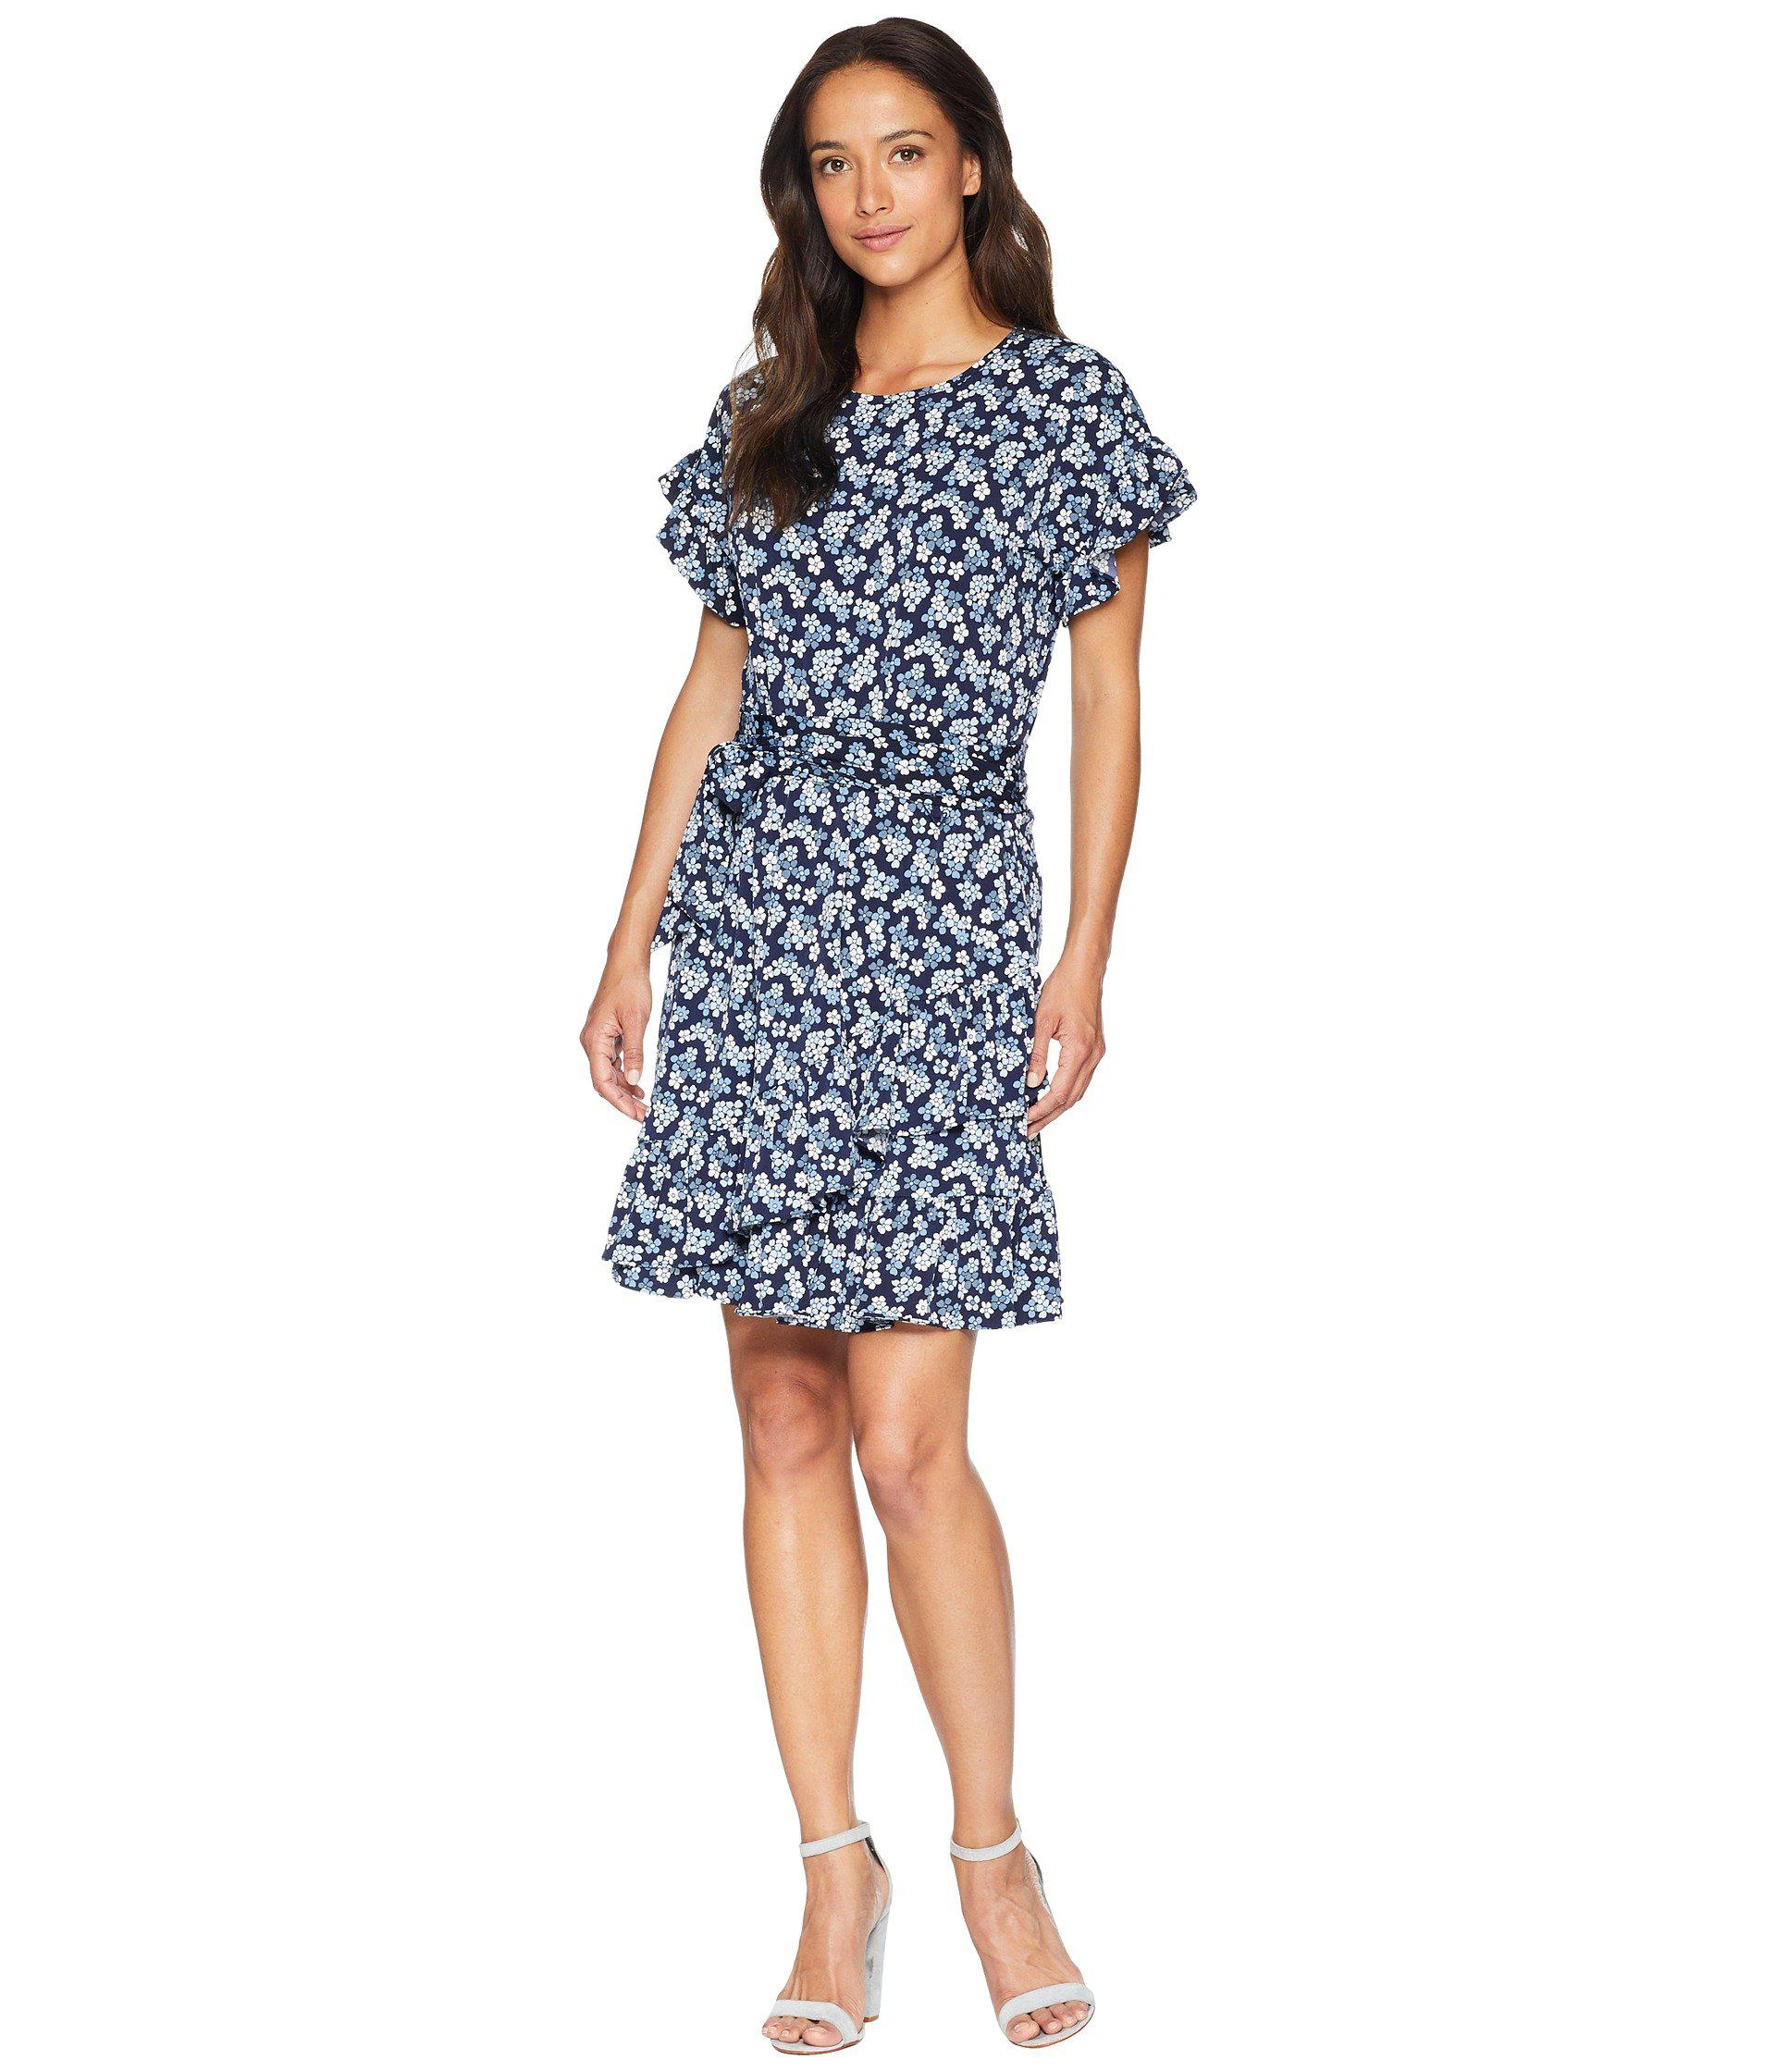 fd62b7fc49 Lyst - MICHAEL Michael Kors Cherry Ruffle Wrap Dress in Blue - Save 40%